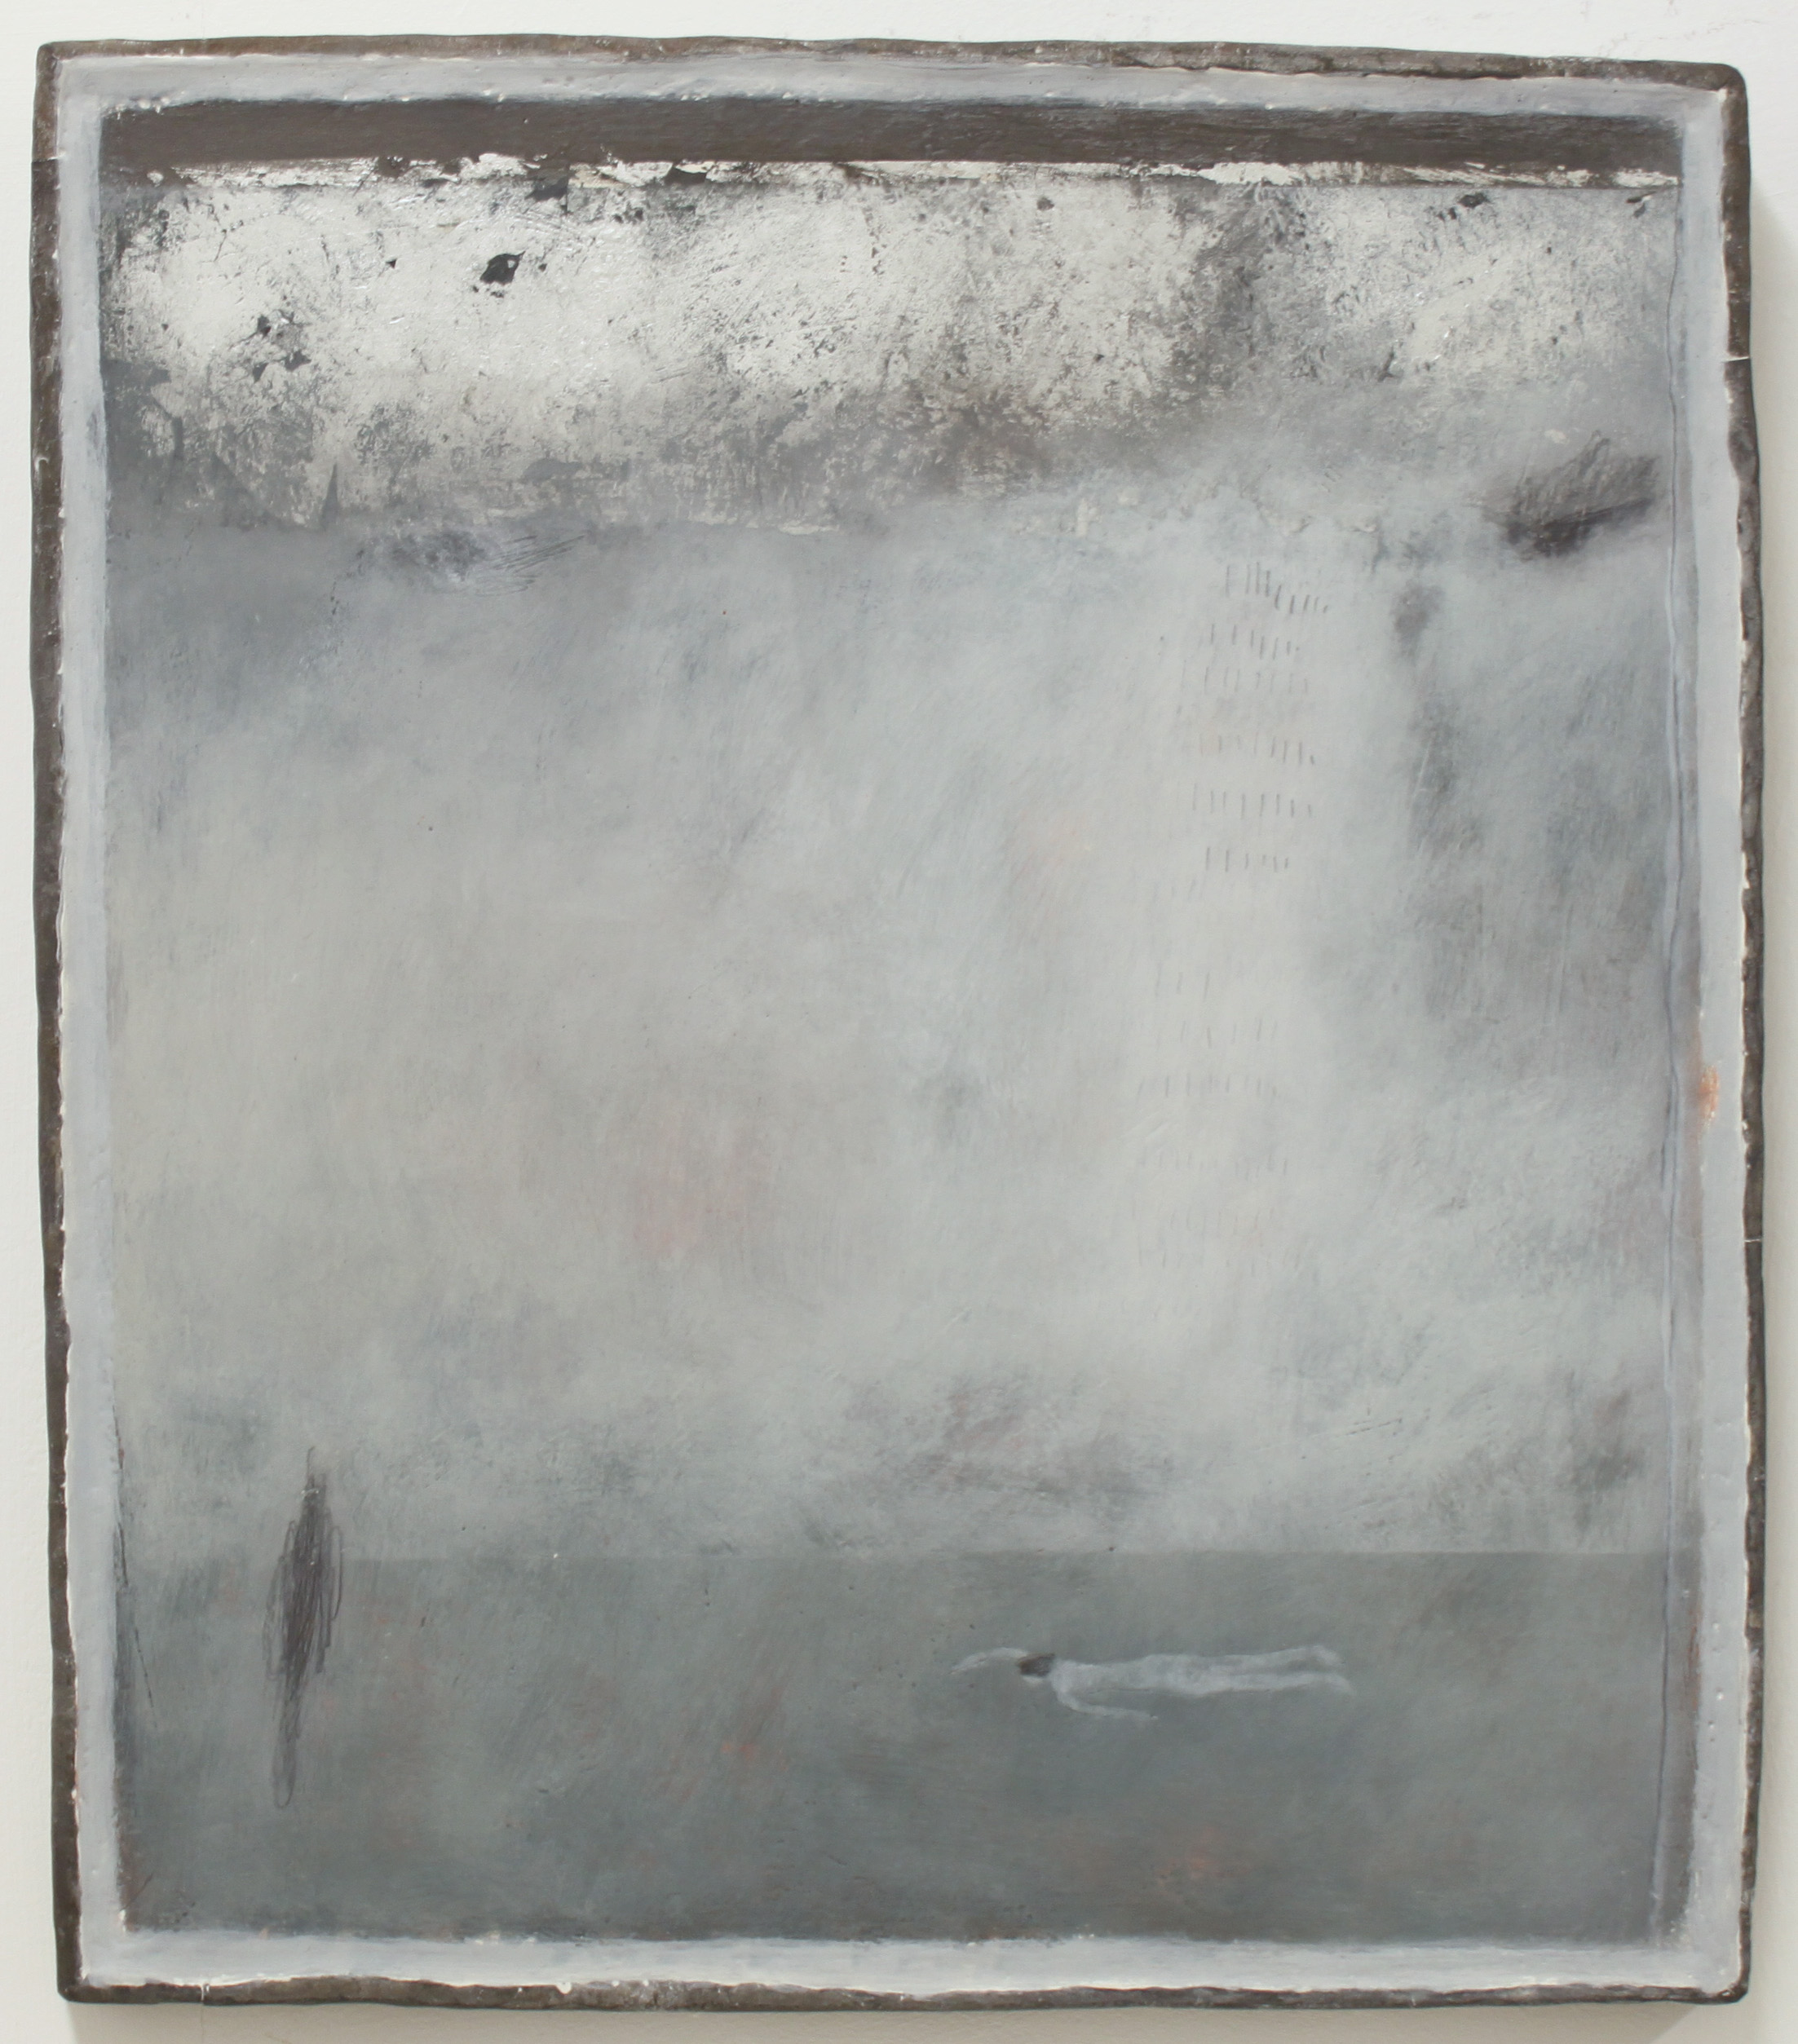 Jo Kehyaian Swimmer-Silver Cloud natural pigment & gesso on wood with lead frame 38 x 43 cm  S O L D